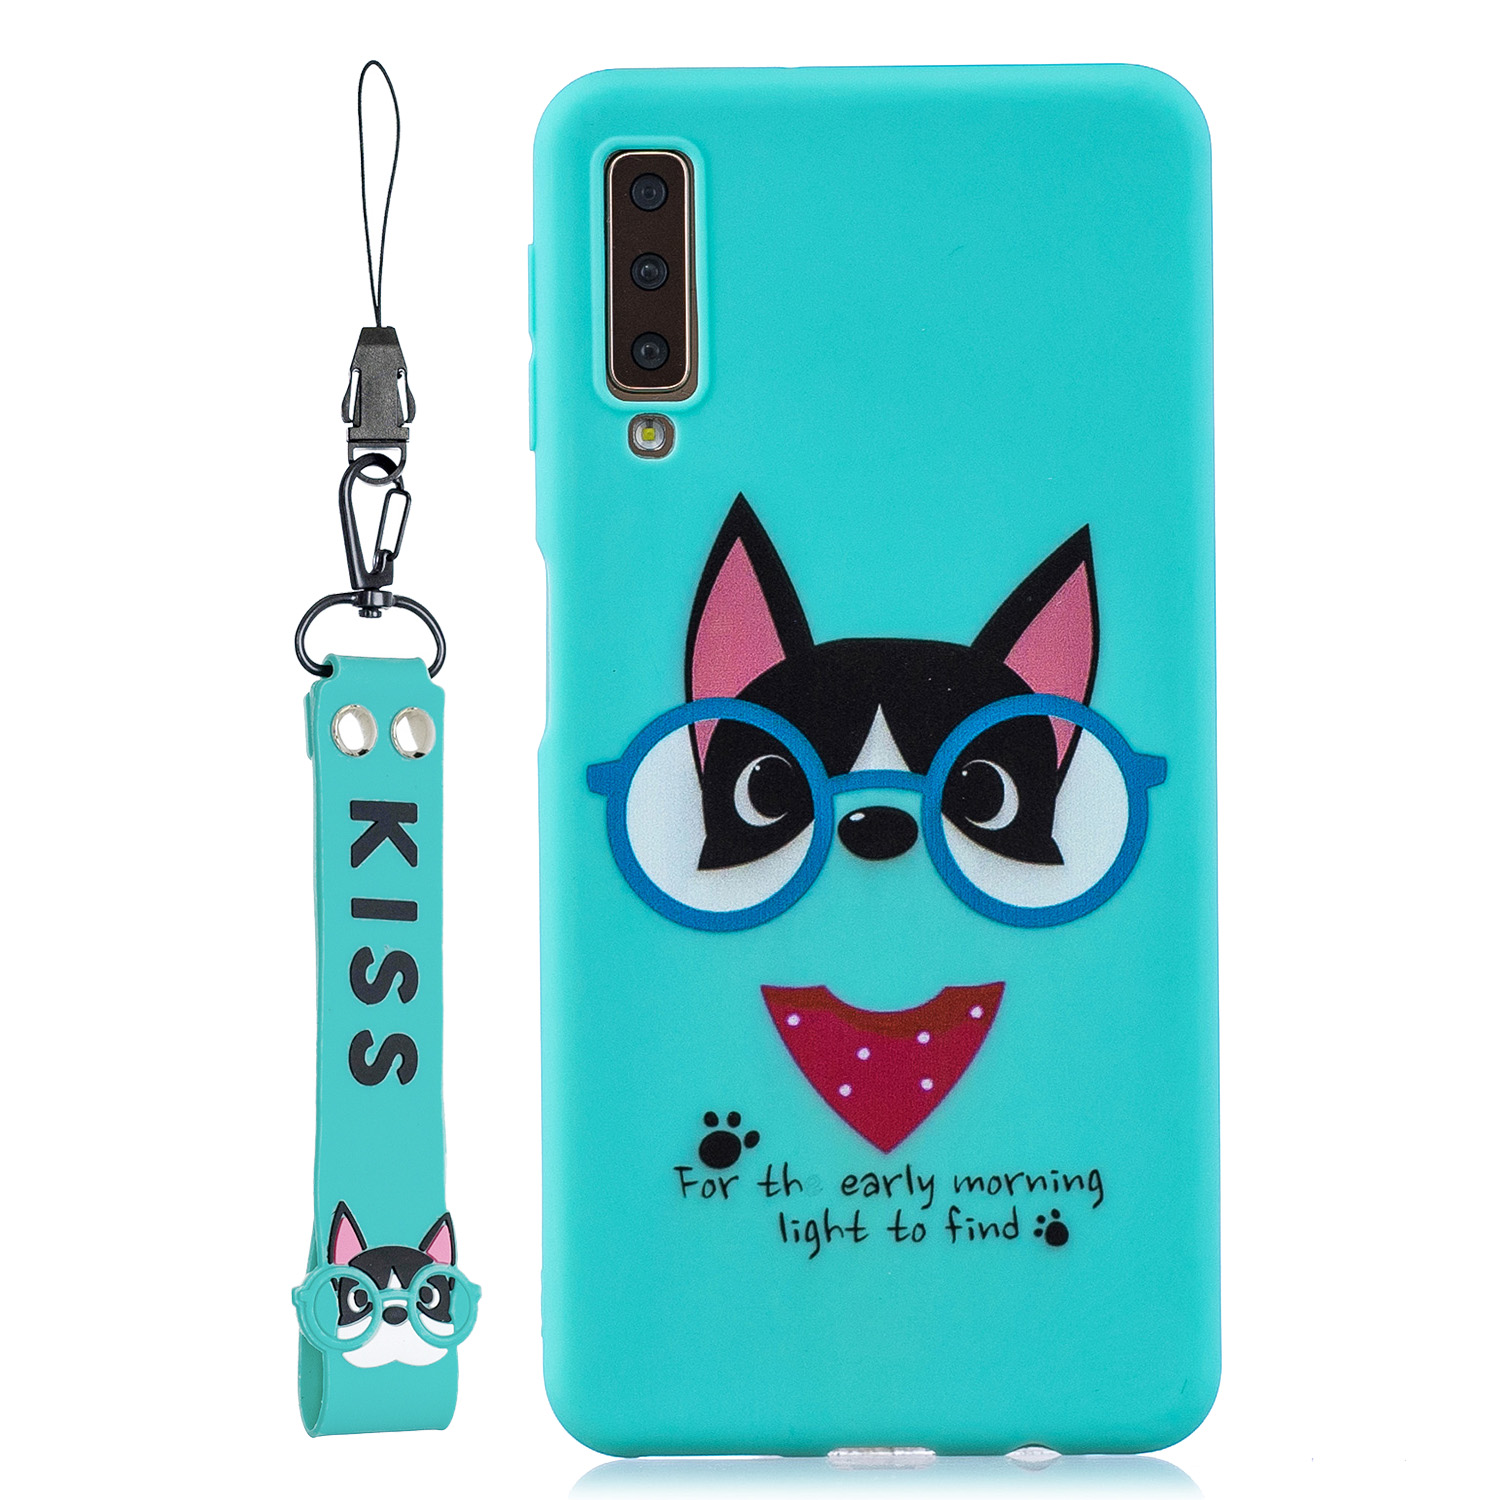 For Samsung A7 2018 Cartoon Lovely Coloured Painted Soft TPU Back Cover Non-slip Shockproof Full Protective Case with Lanyard Light blue